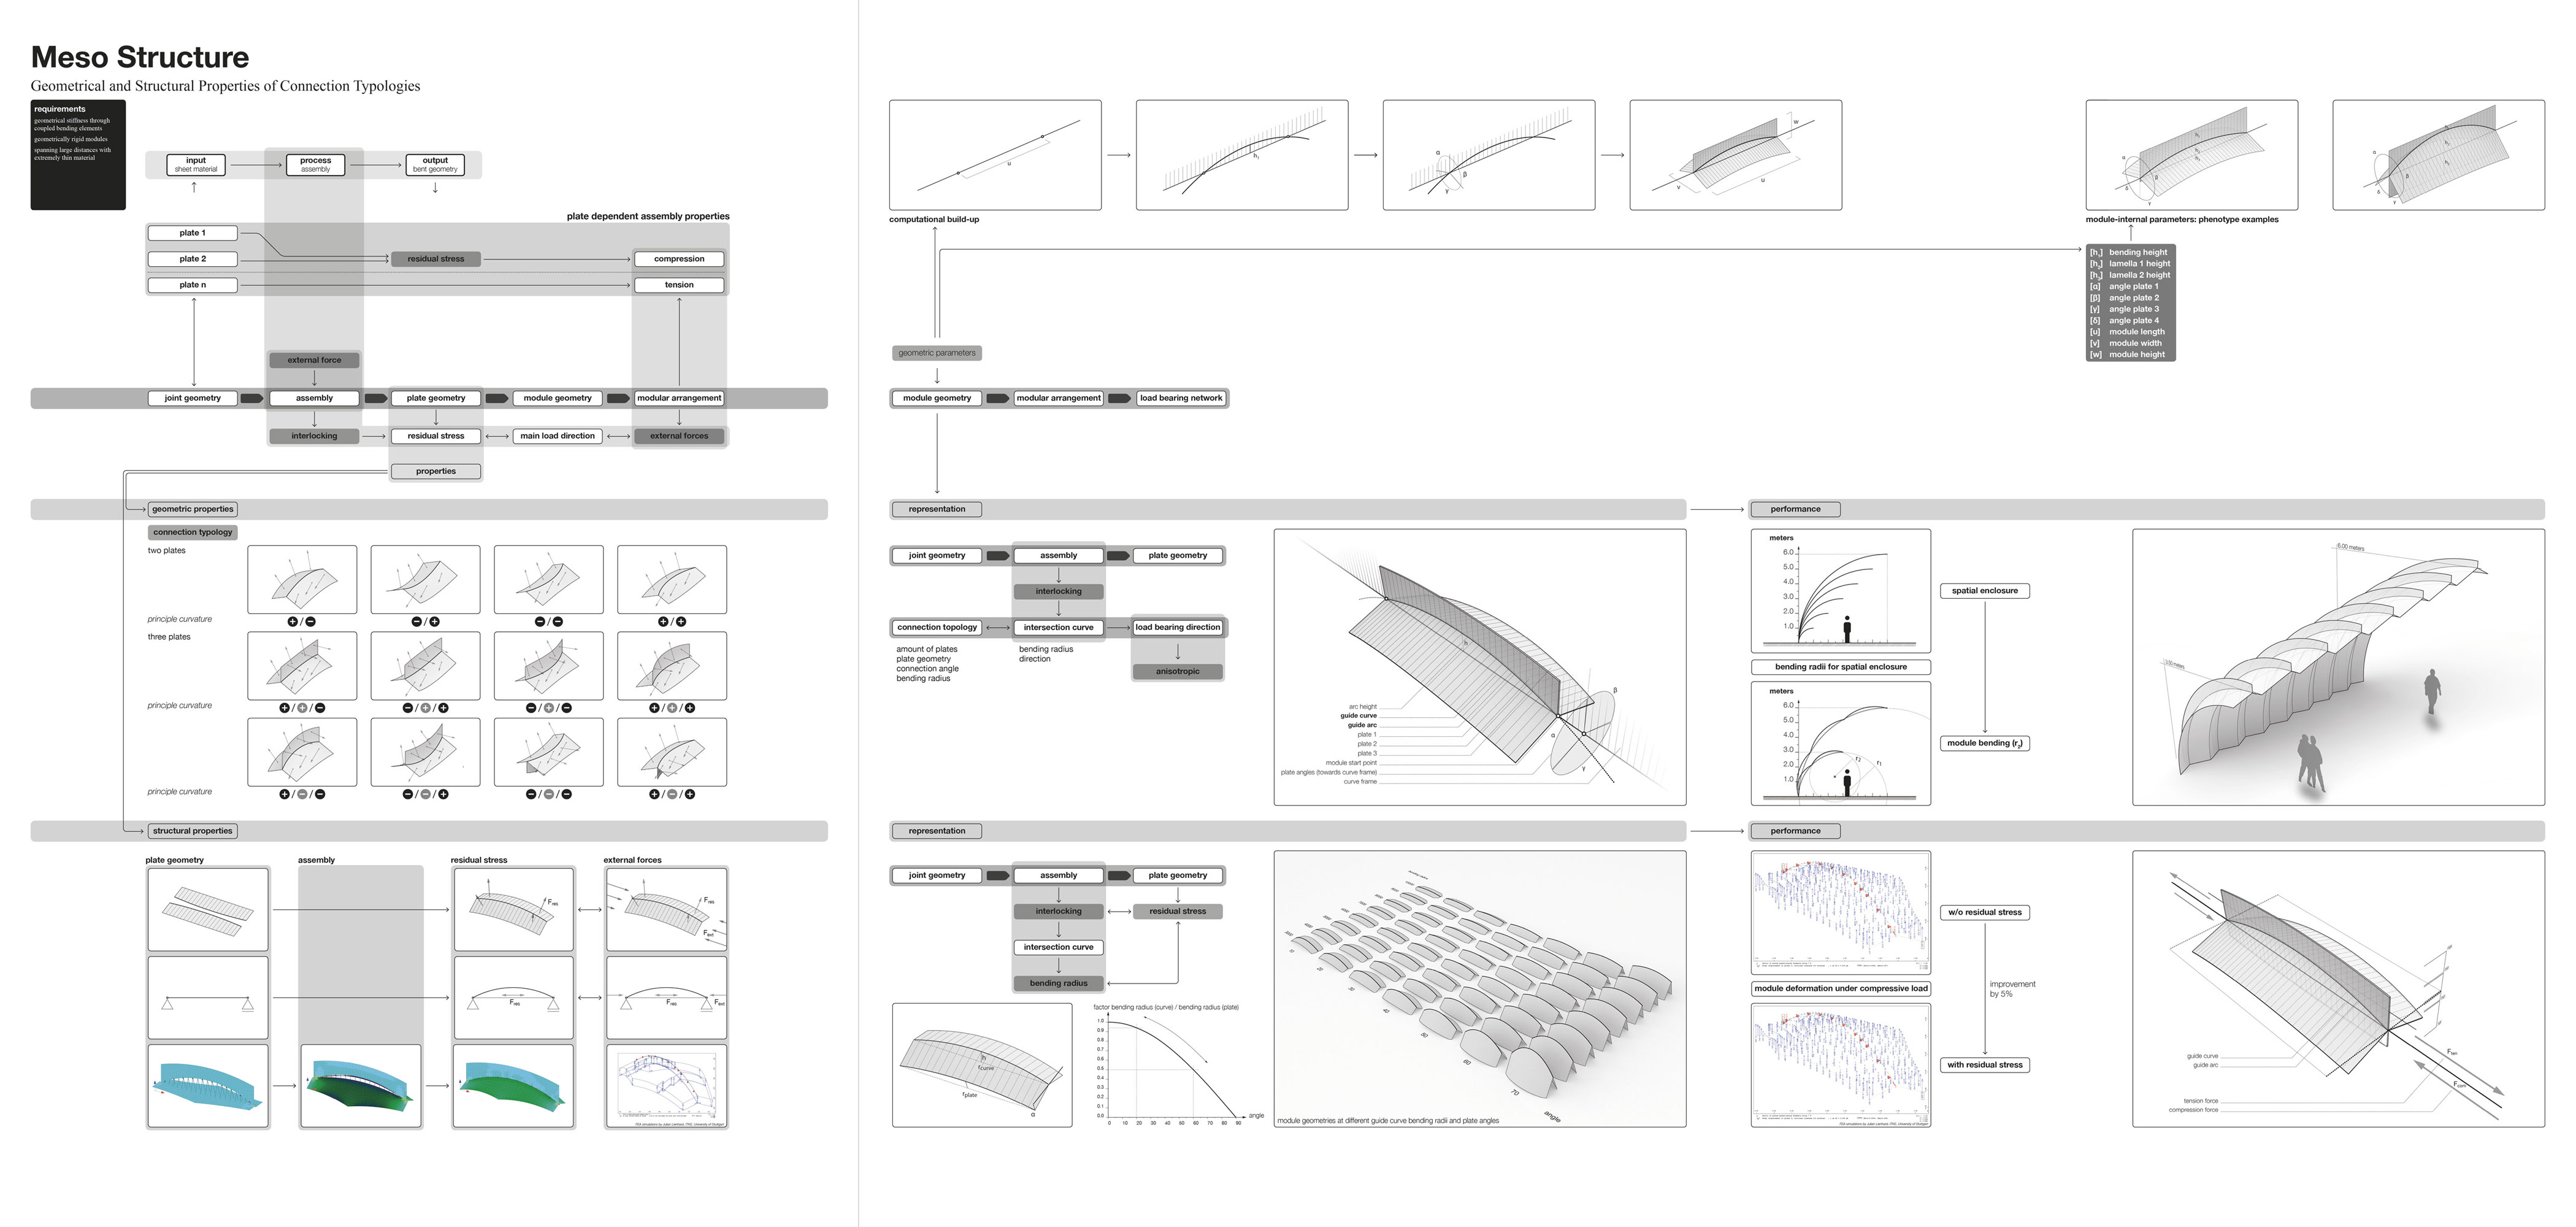 connecting intelligence oliver david krieg architecture is characterized by a shift from cnc machinery designed for a specific task towards more generic fabrication equipment such as industrial